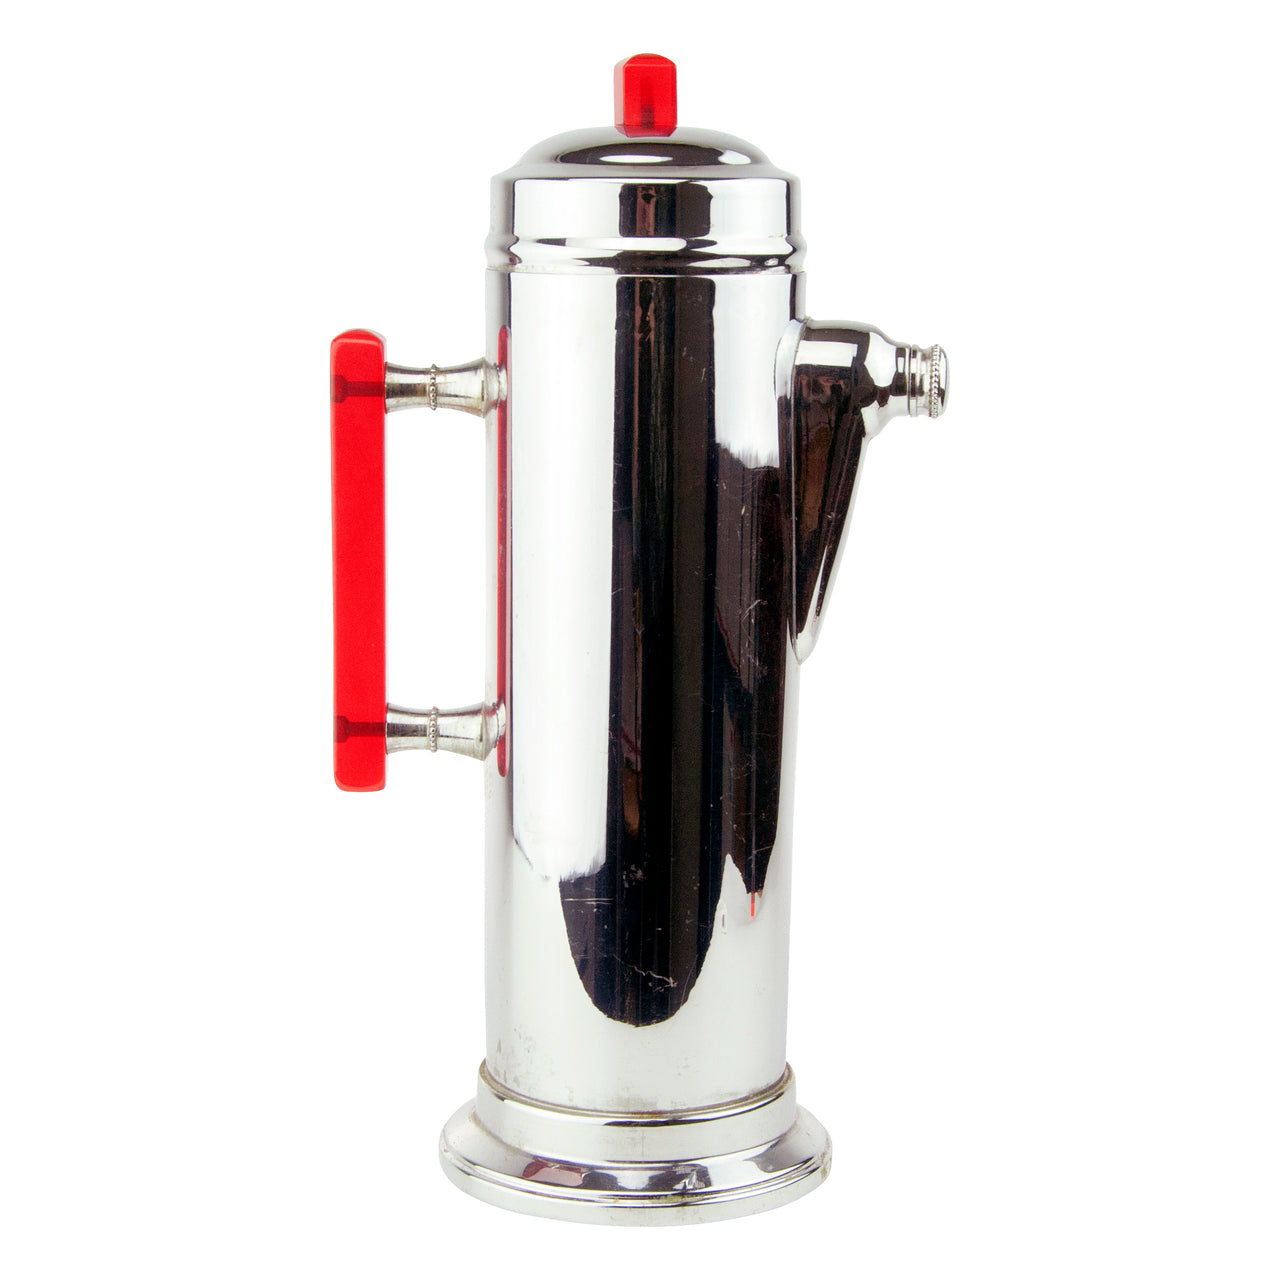 Vintage Art Deco Red Lucite Handle Chrome Cocktail Shaker